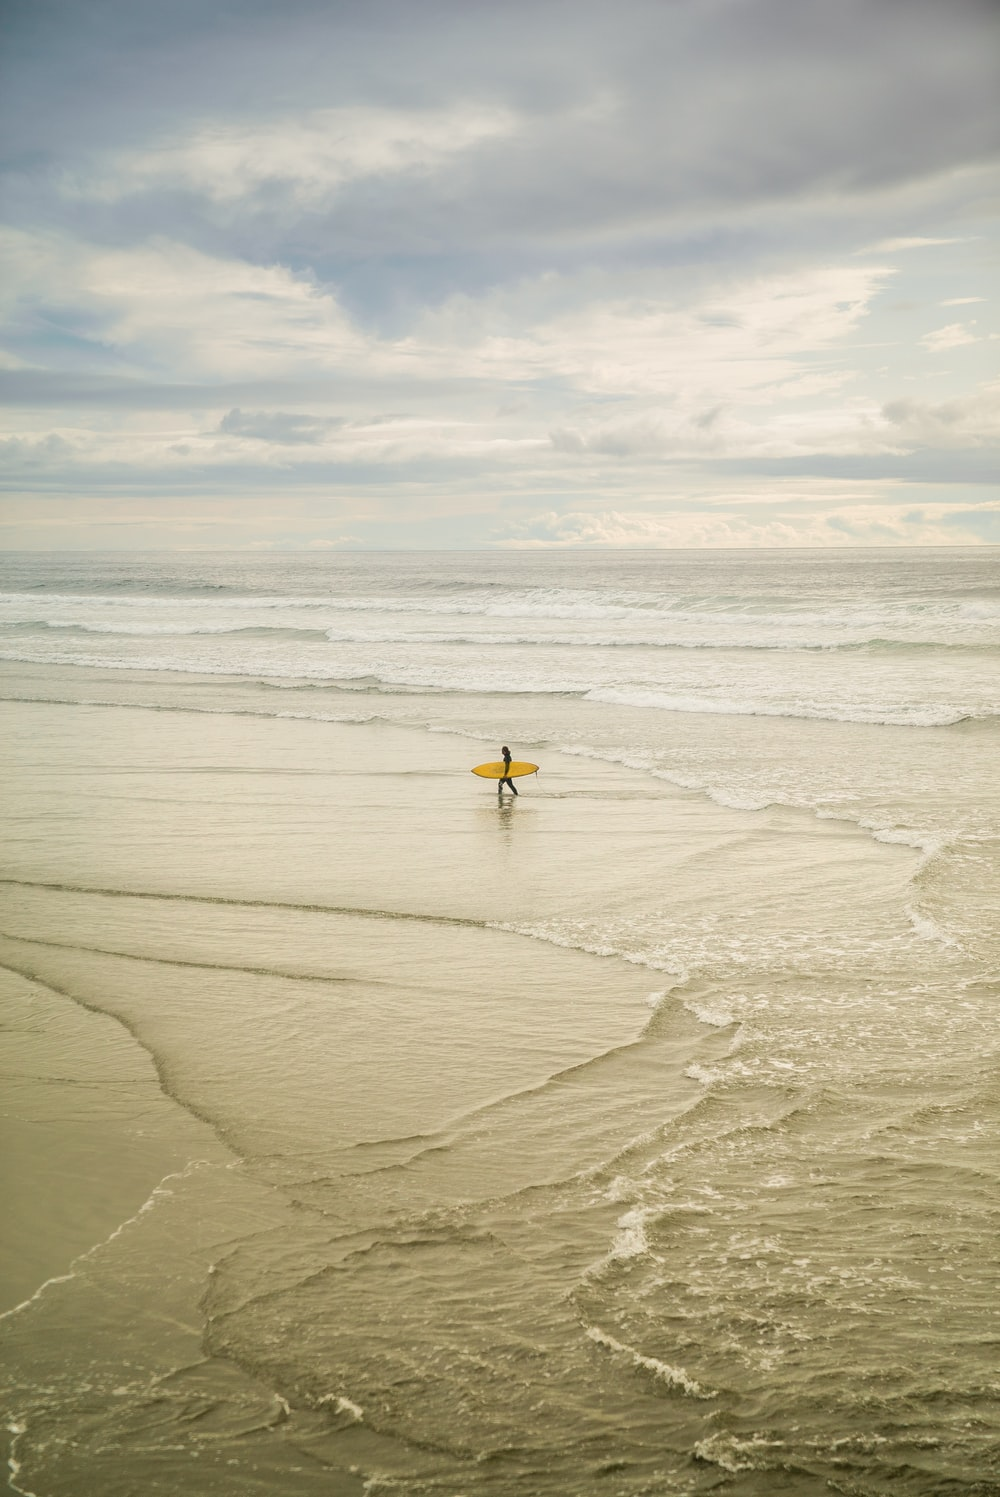 person holding yellow surfboard on seashore during daytime